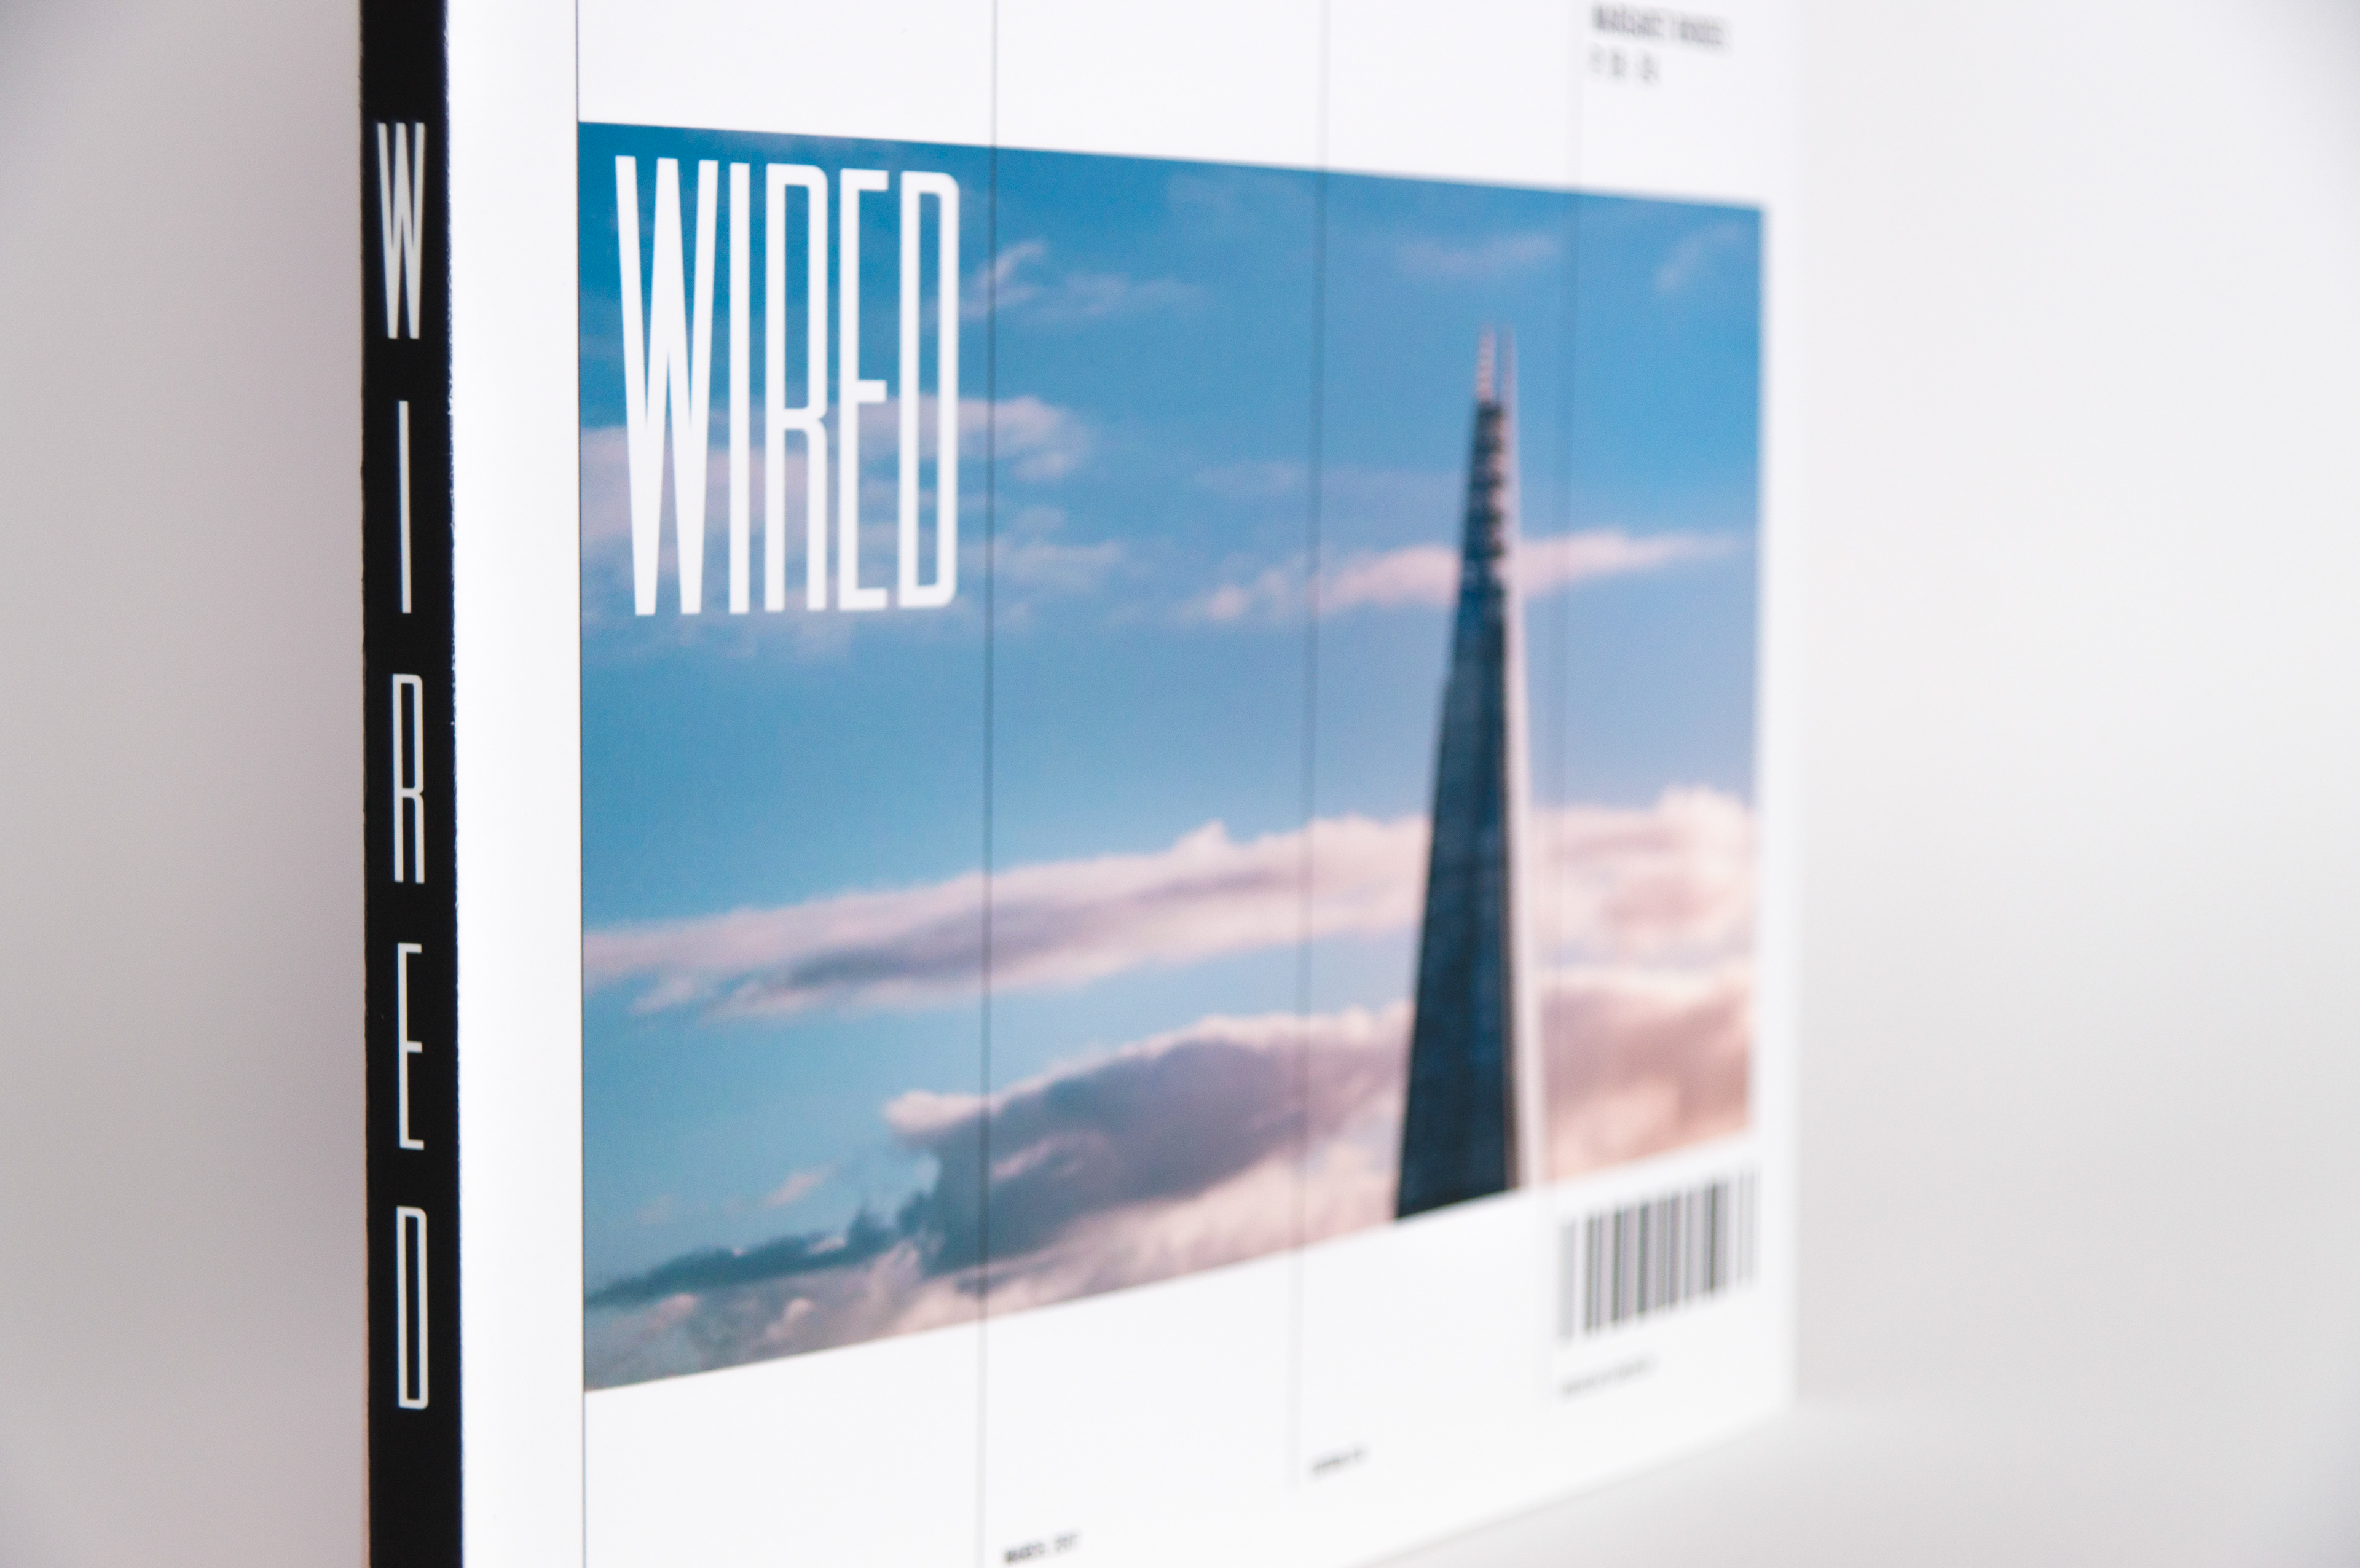 Lyon van den Oord - Wired Magazine: Cover redesign